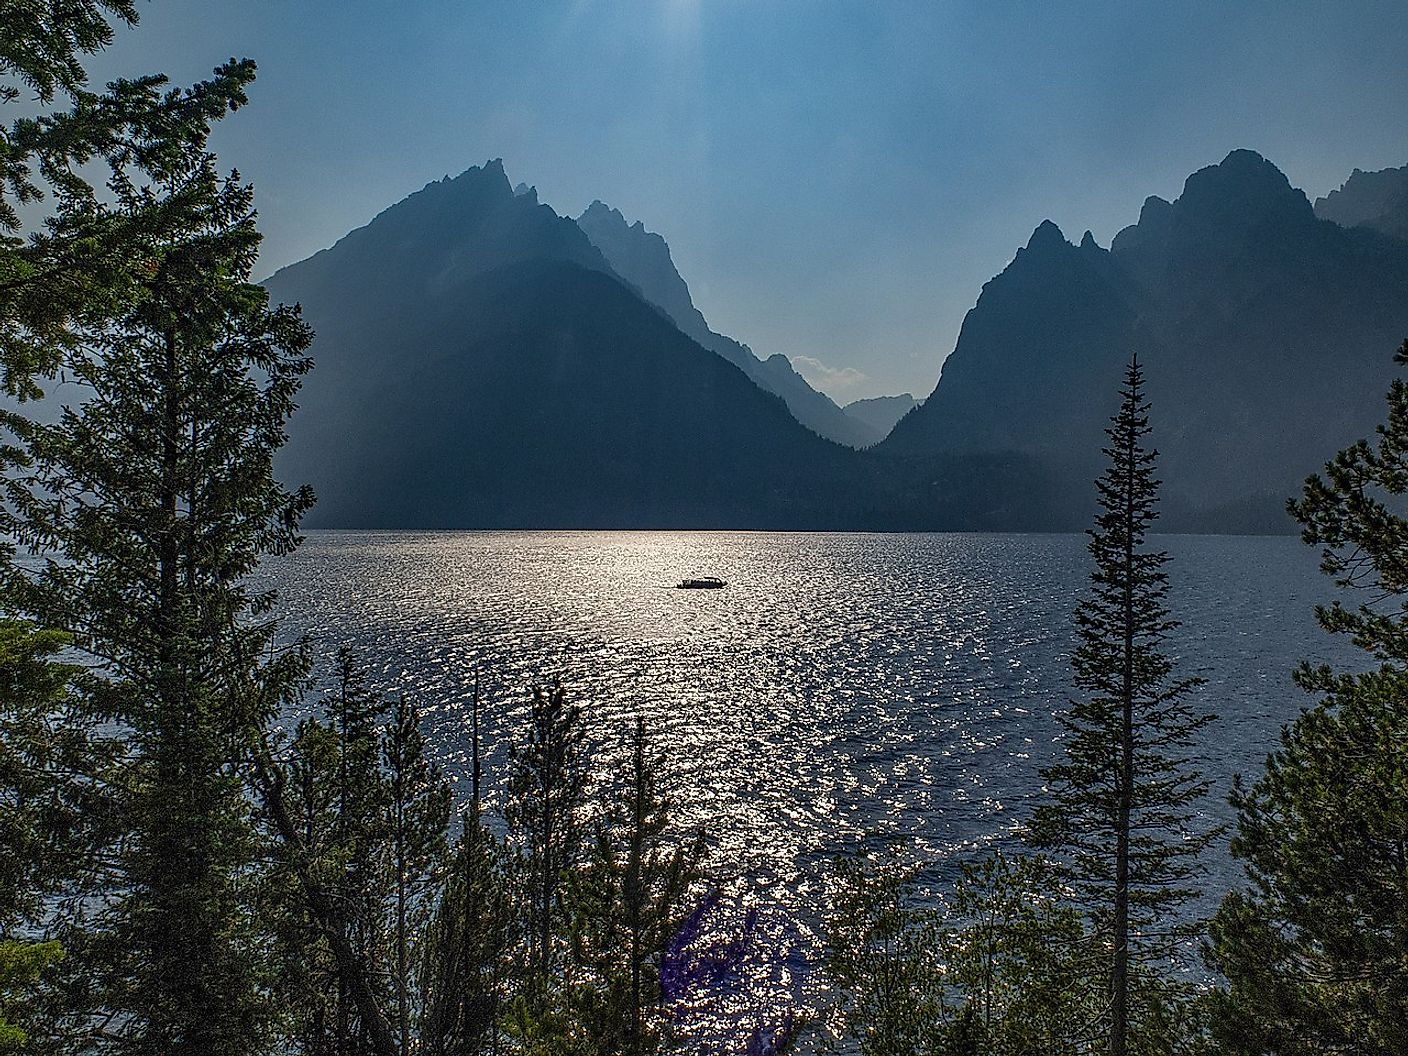 Jenny Lake at Grand Teton National Park. Image credit: Burley Packwood/Wikimedia.org